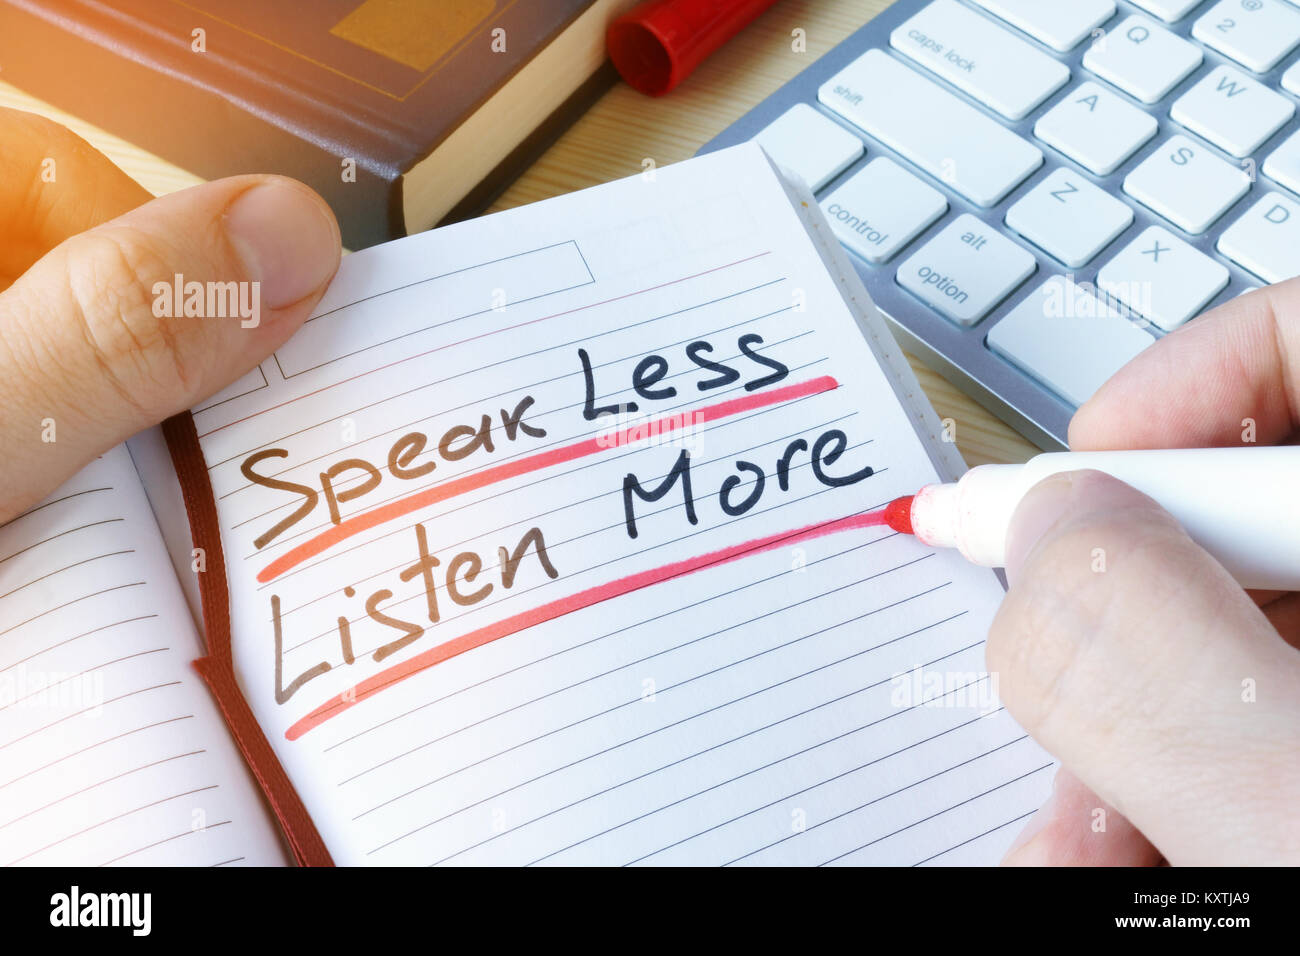 Man writing quote Speak less listen more. - Stock Image